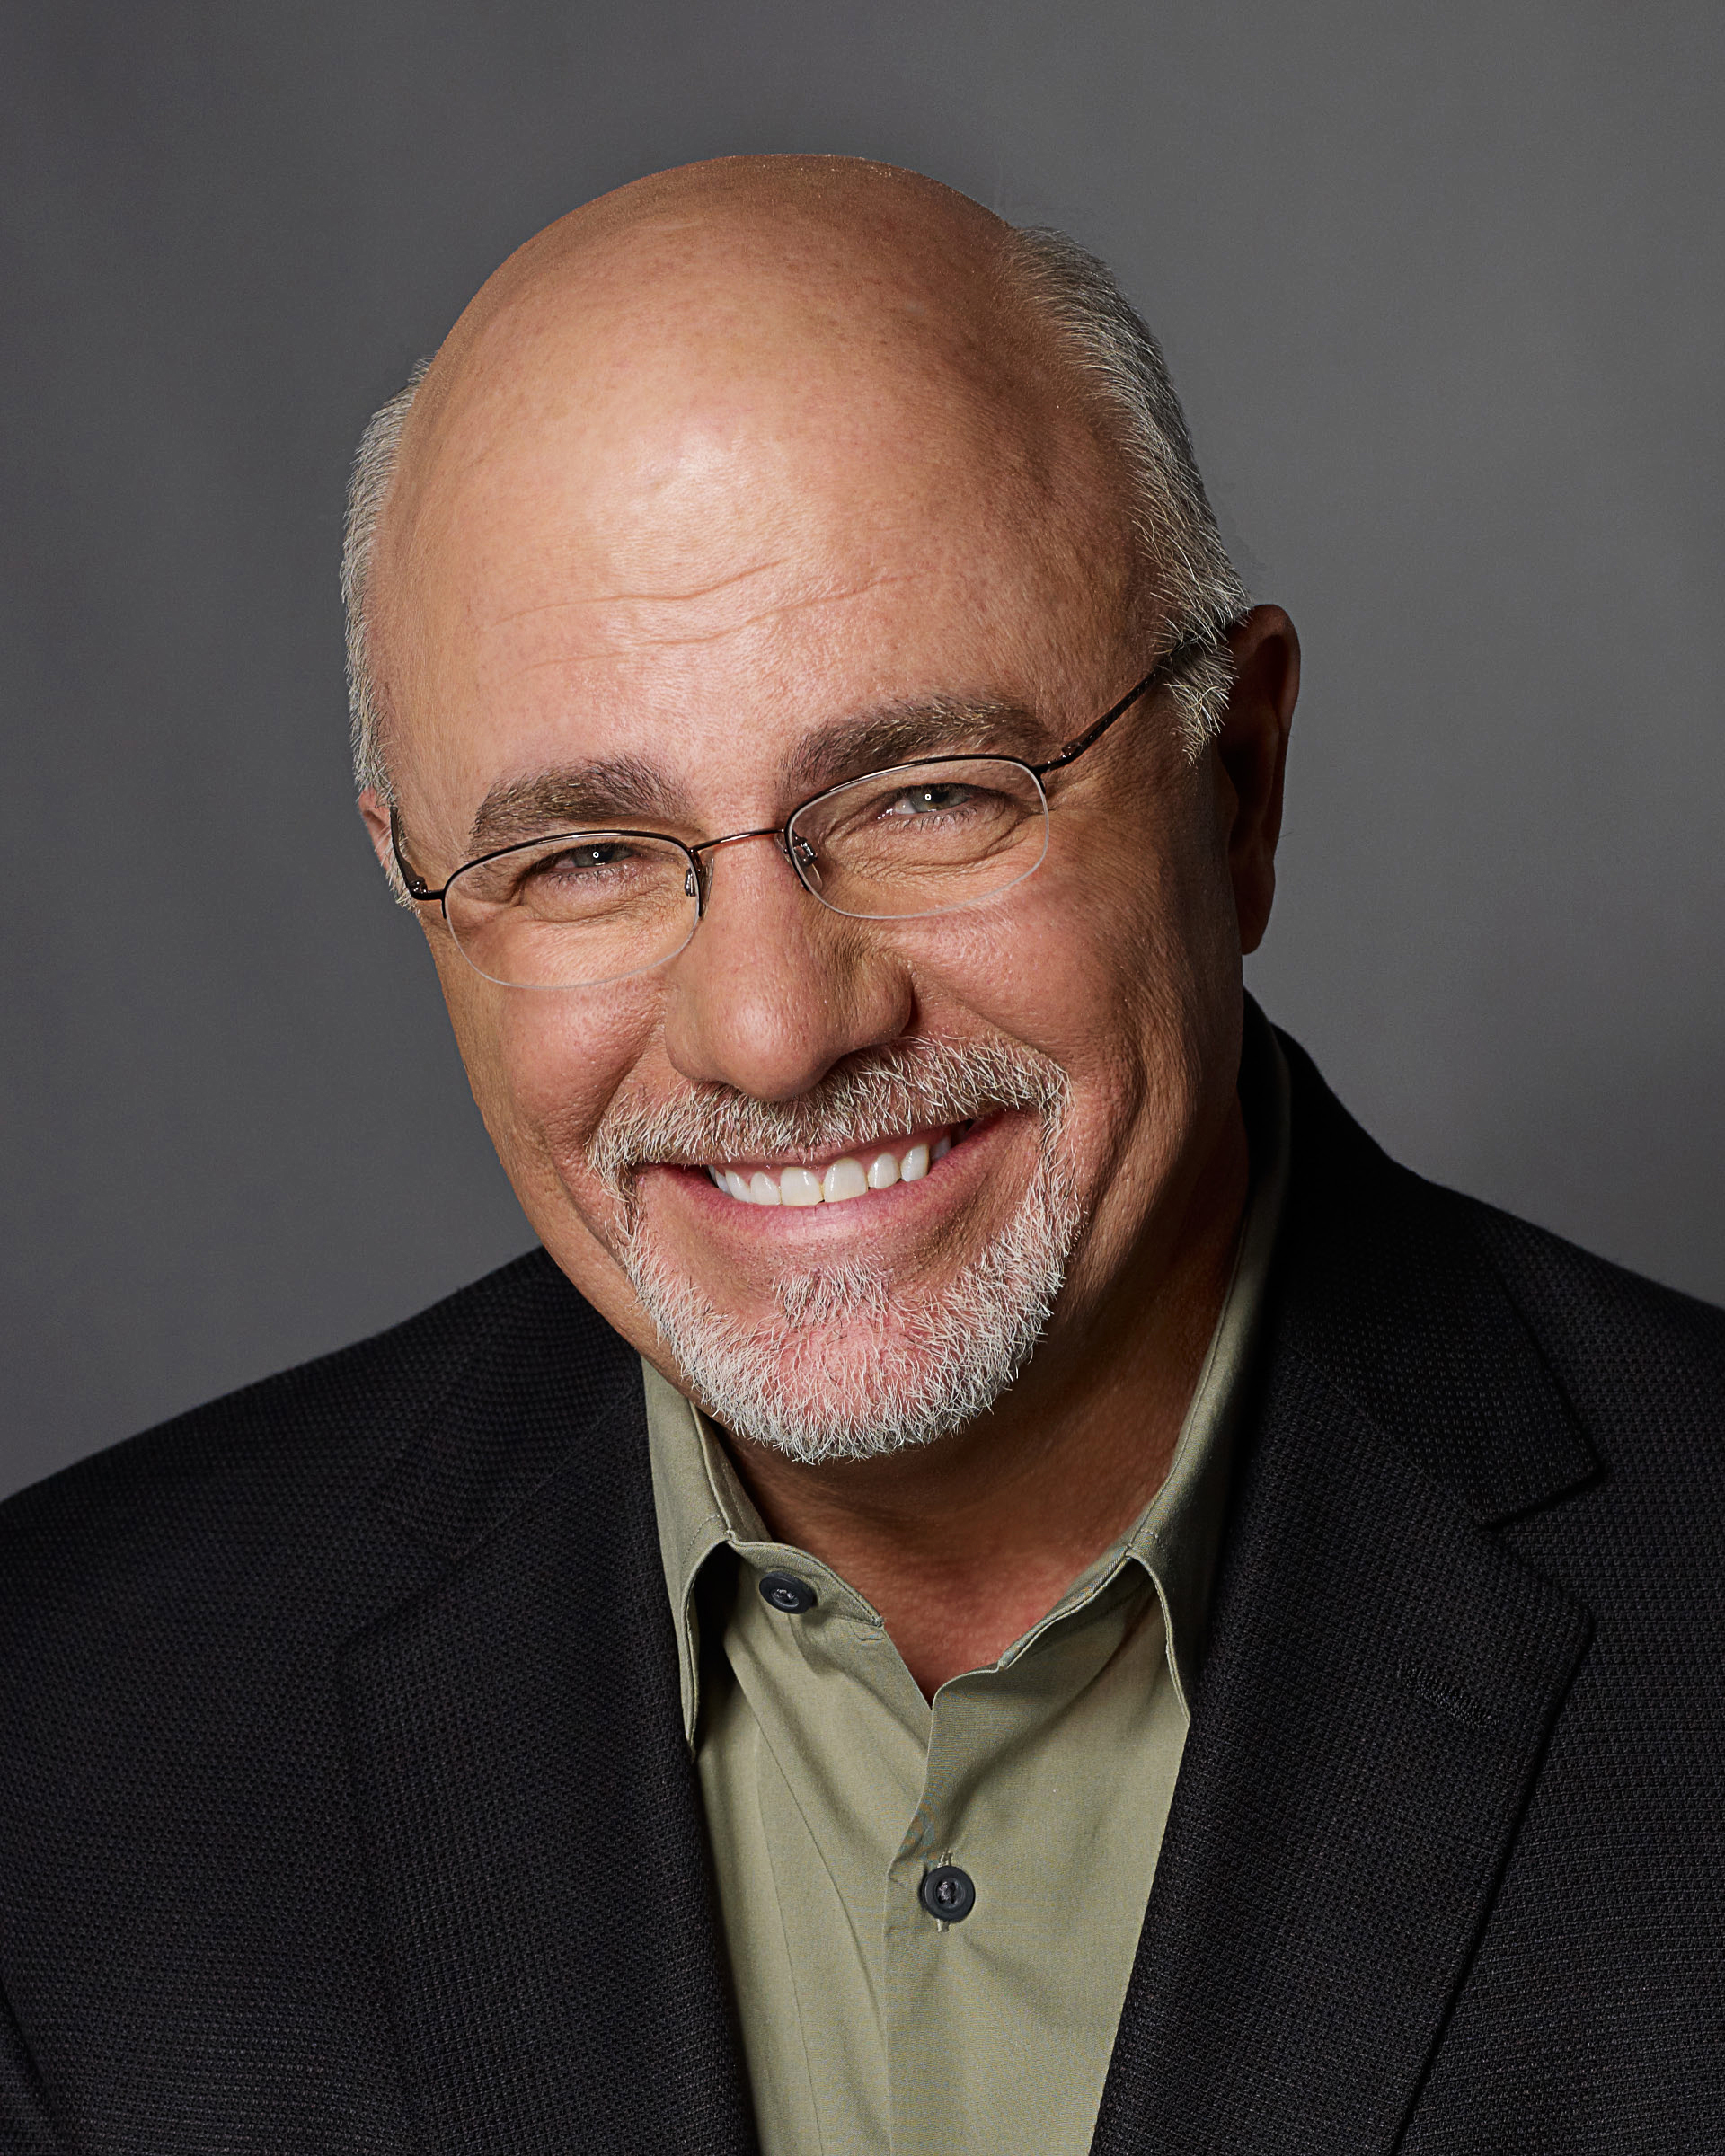 Dave ramsey investing options